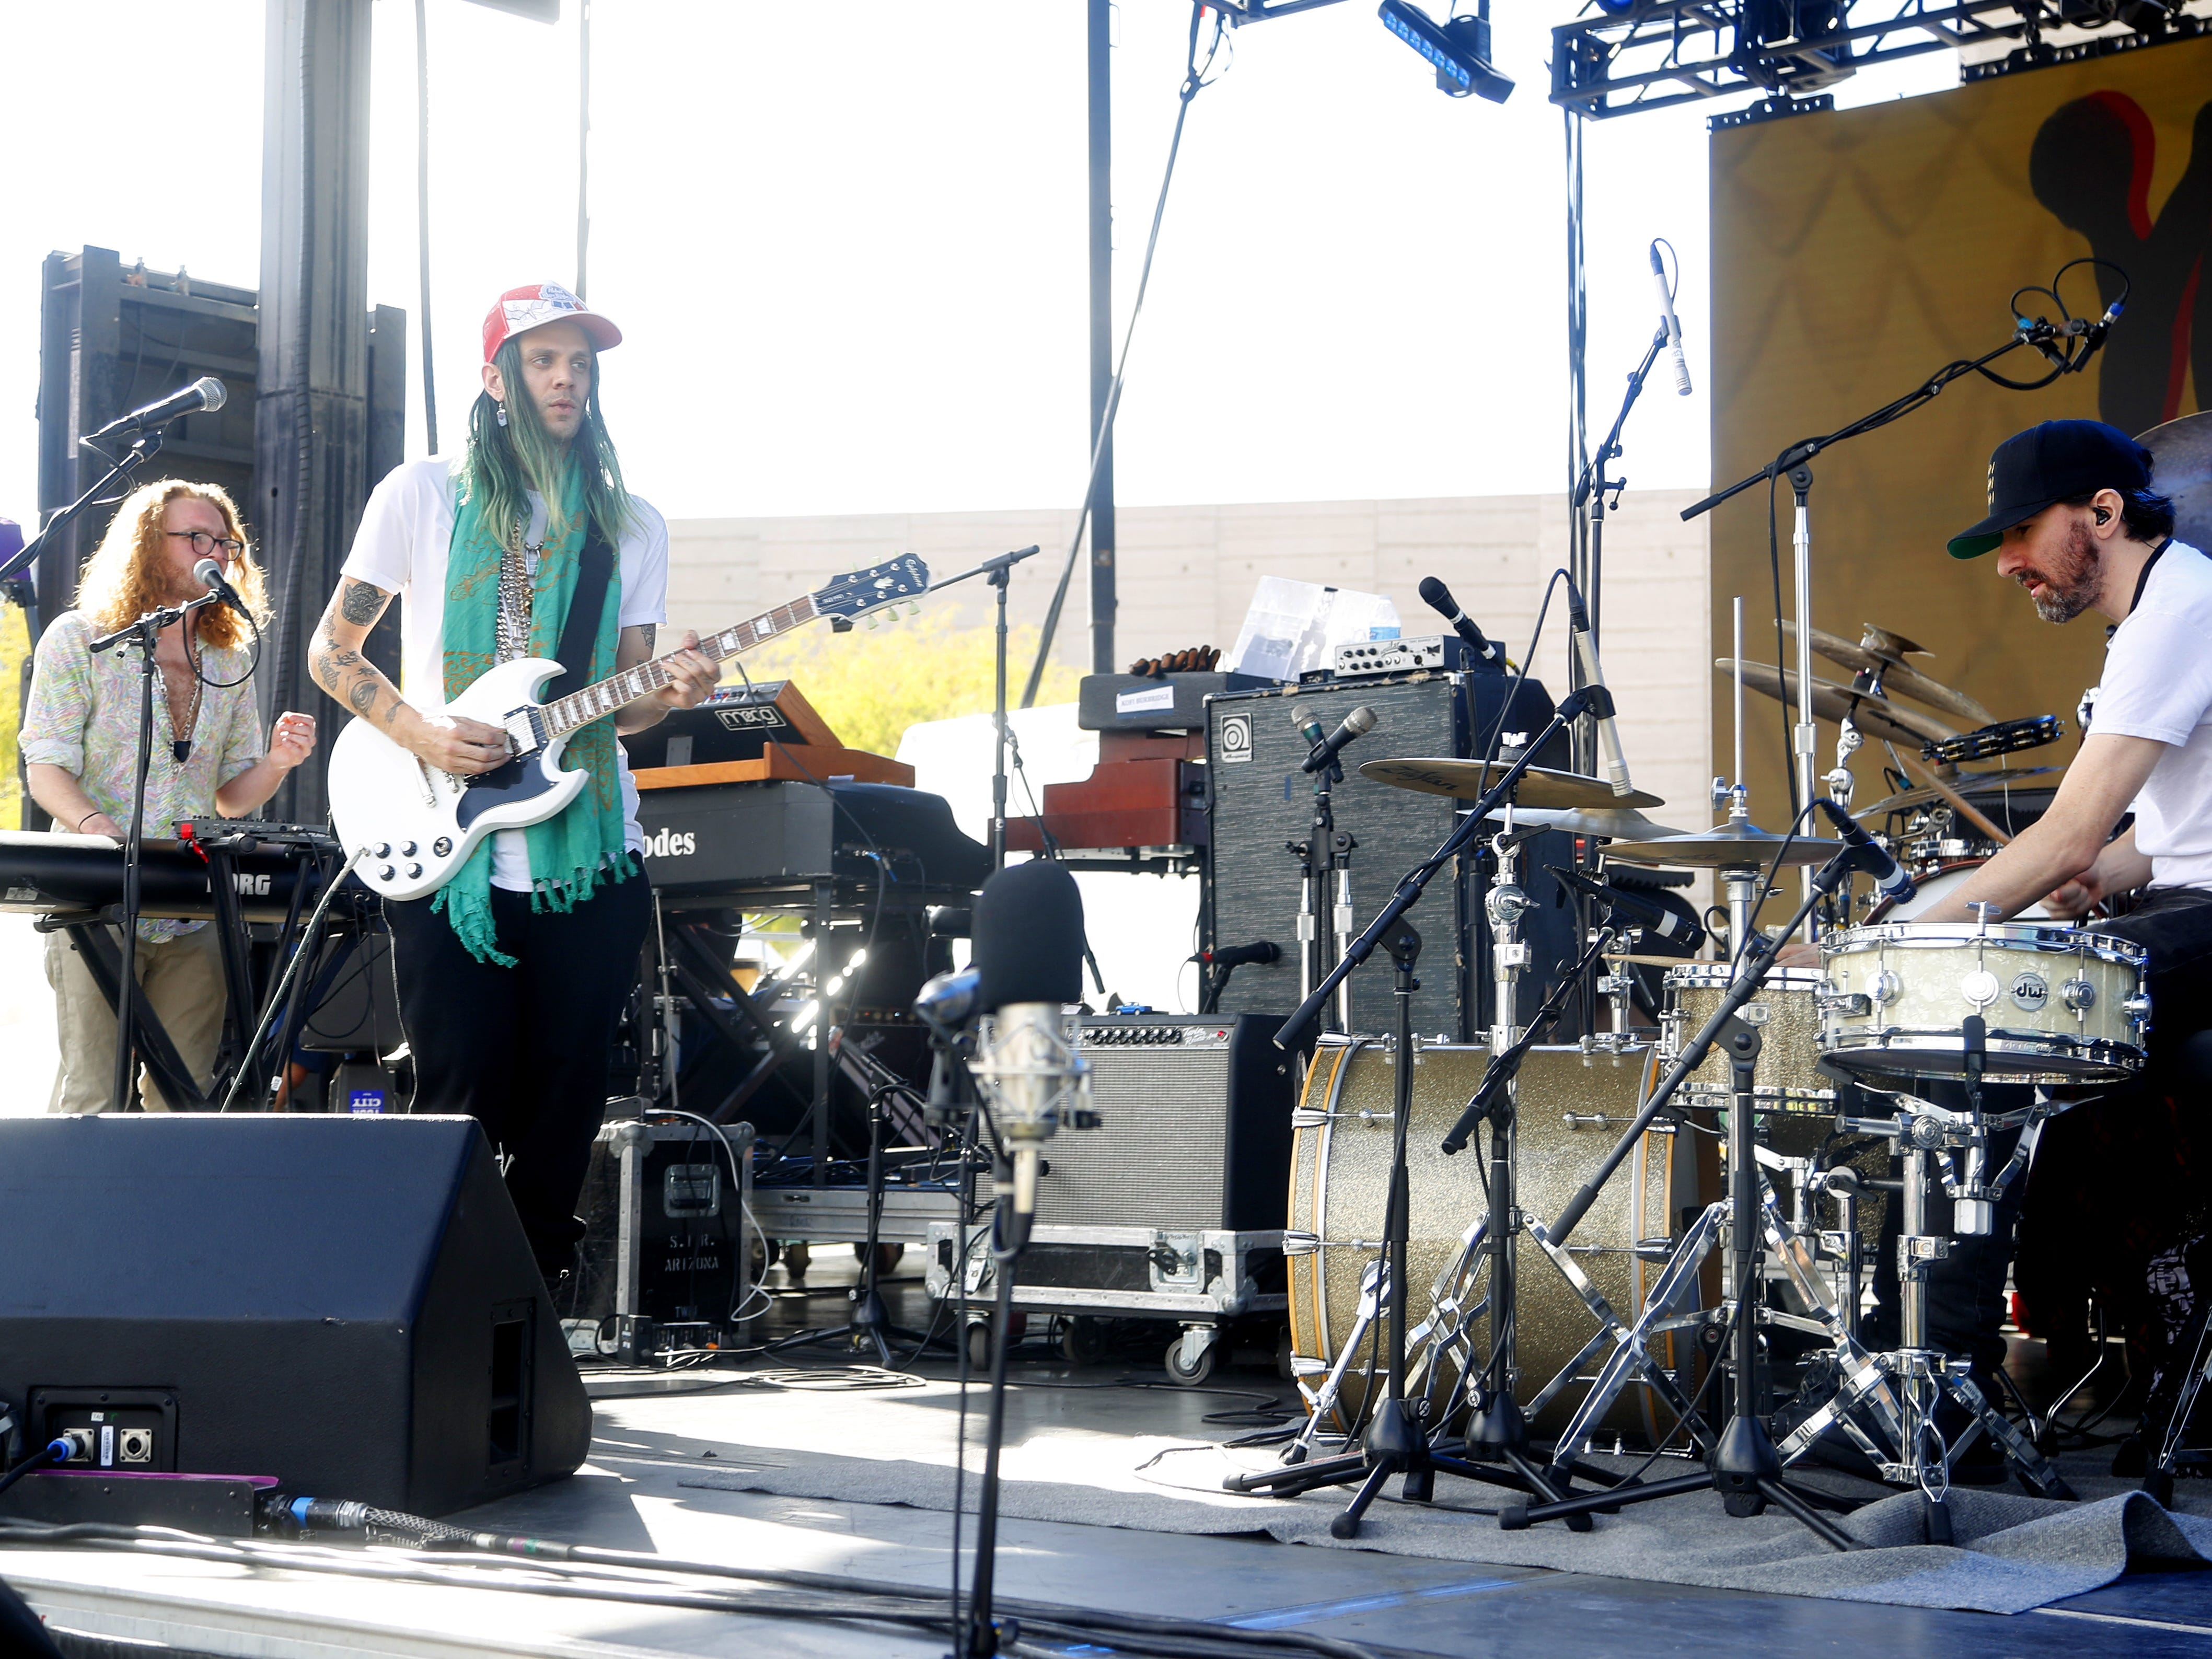 Young & Sick perform during the McDowell Mountain Music Festival in Phoenix, Ariz. on March 2, 2019.